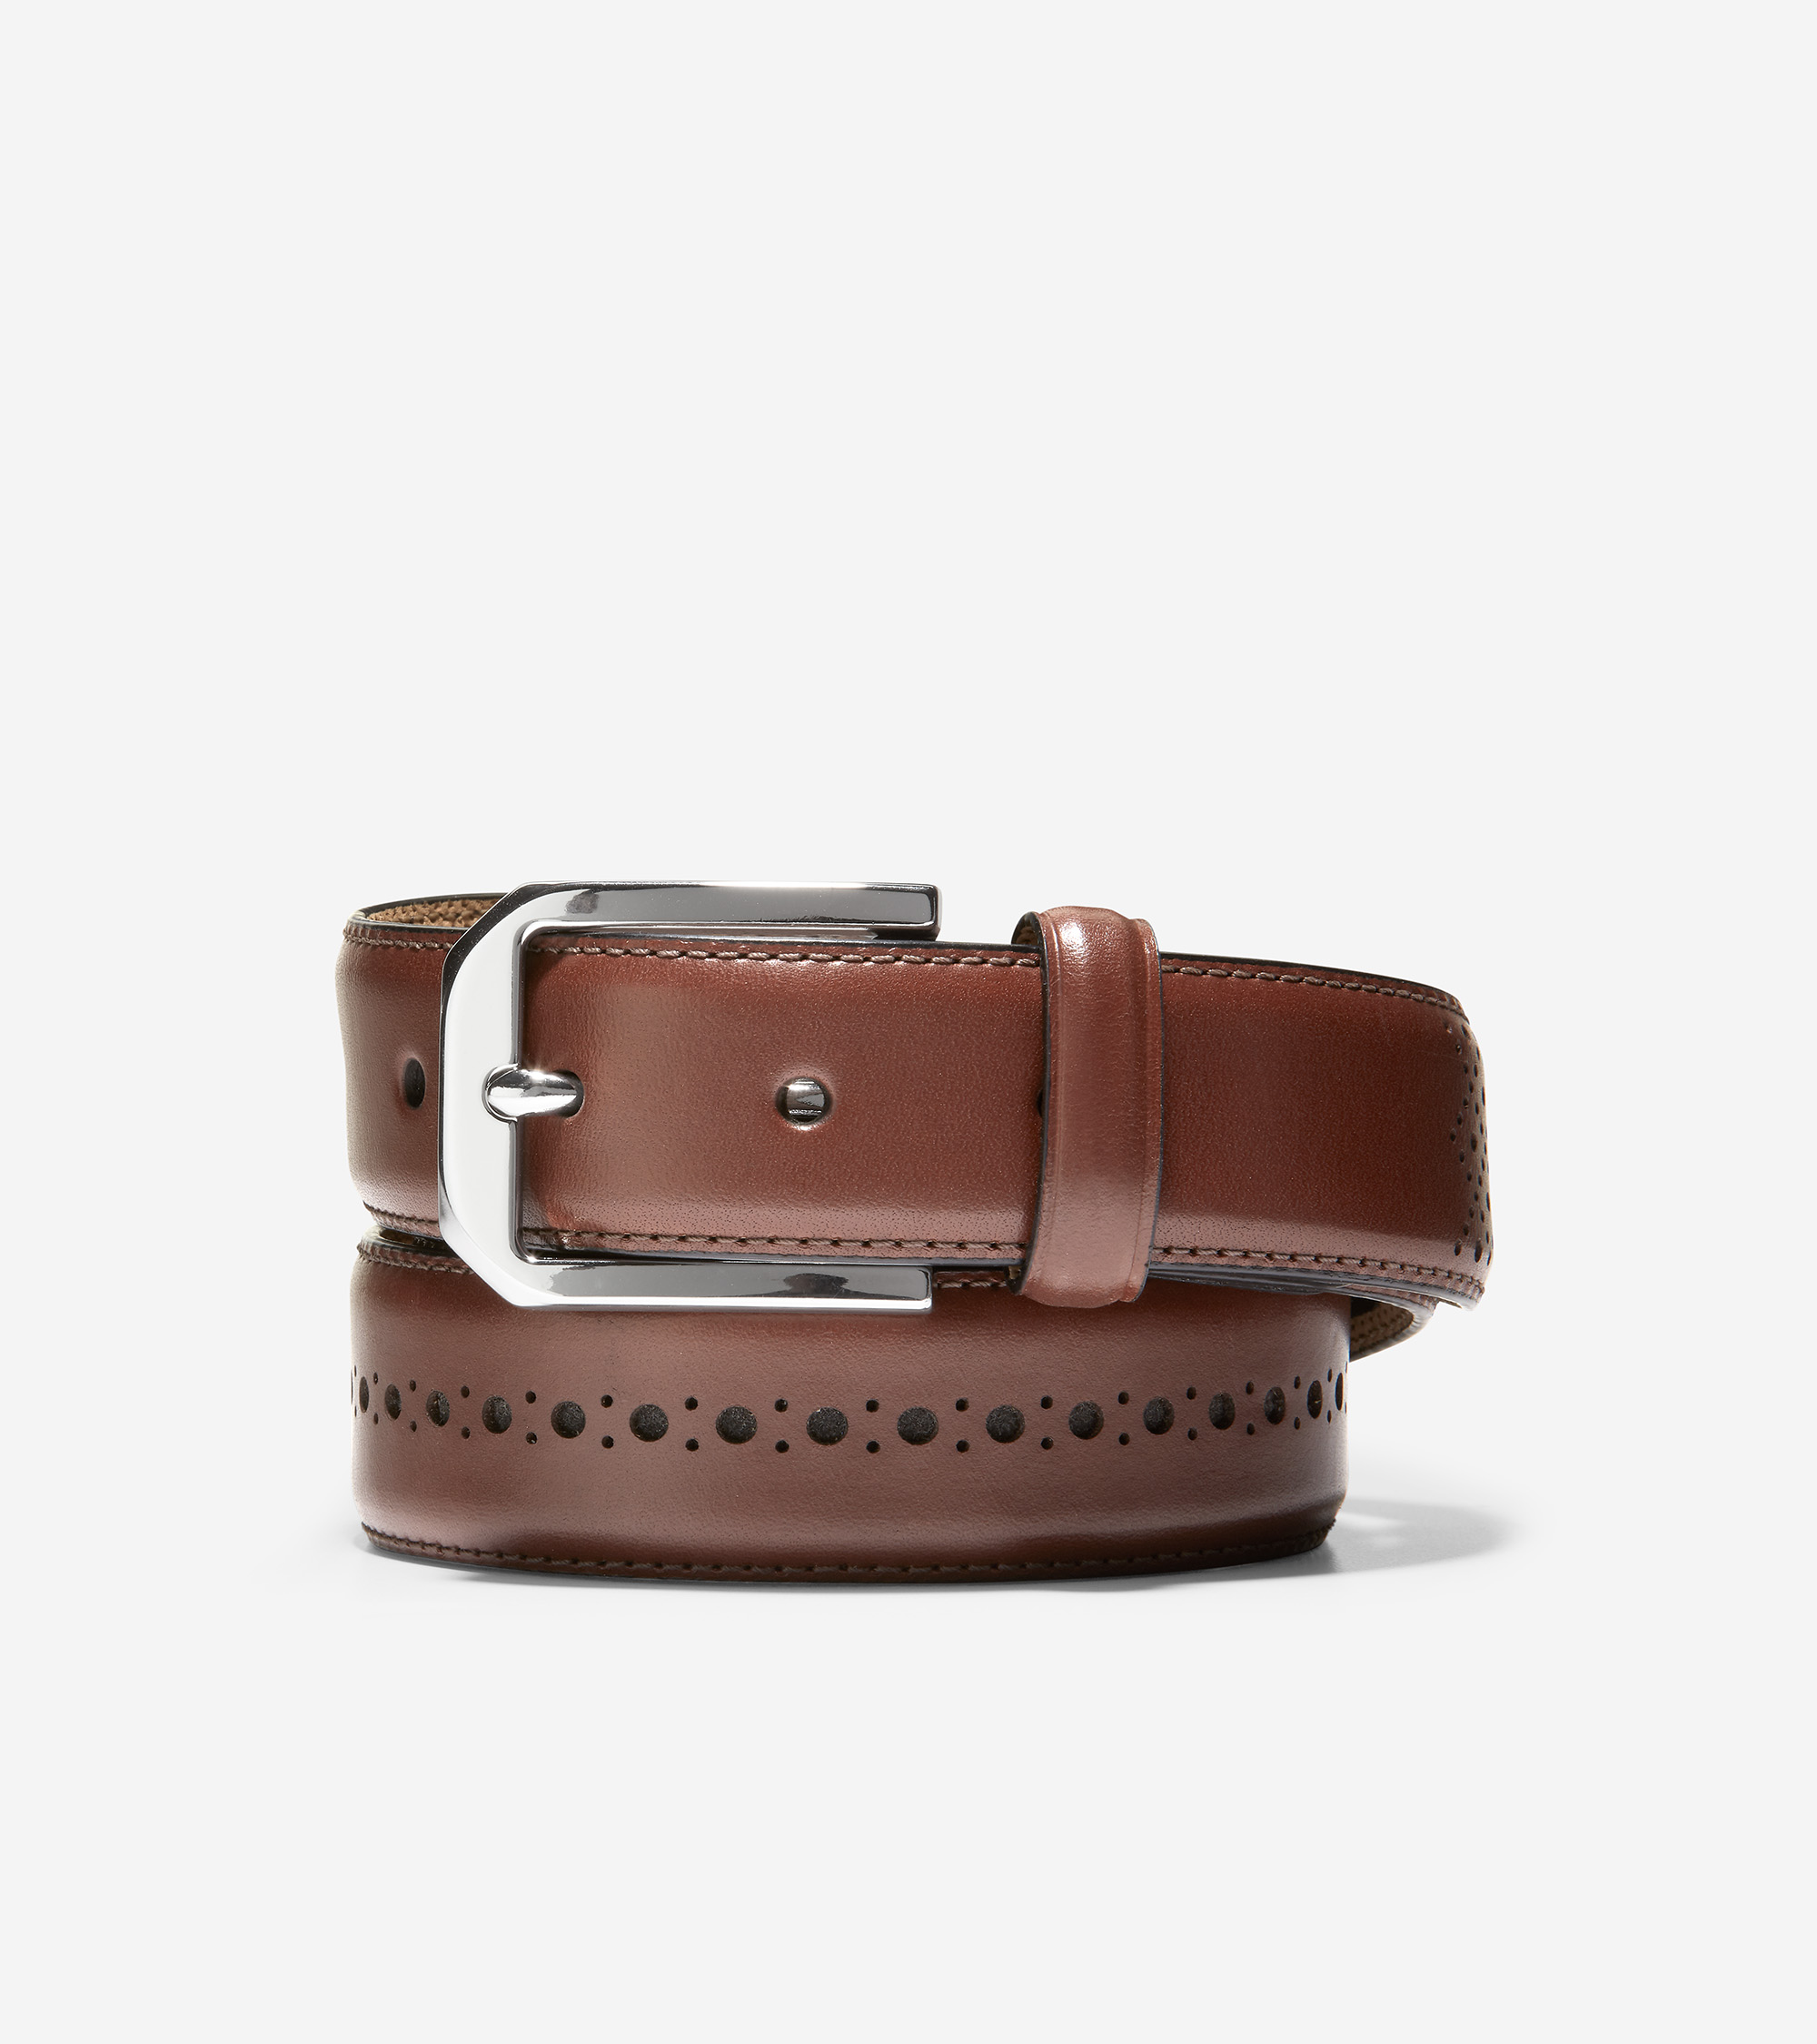 Feathered Edge Brogue Perf 32mm Belt